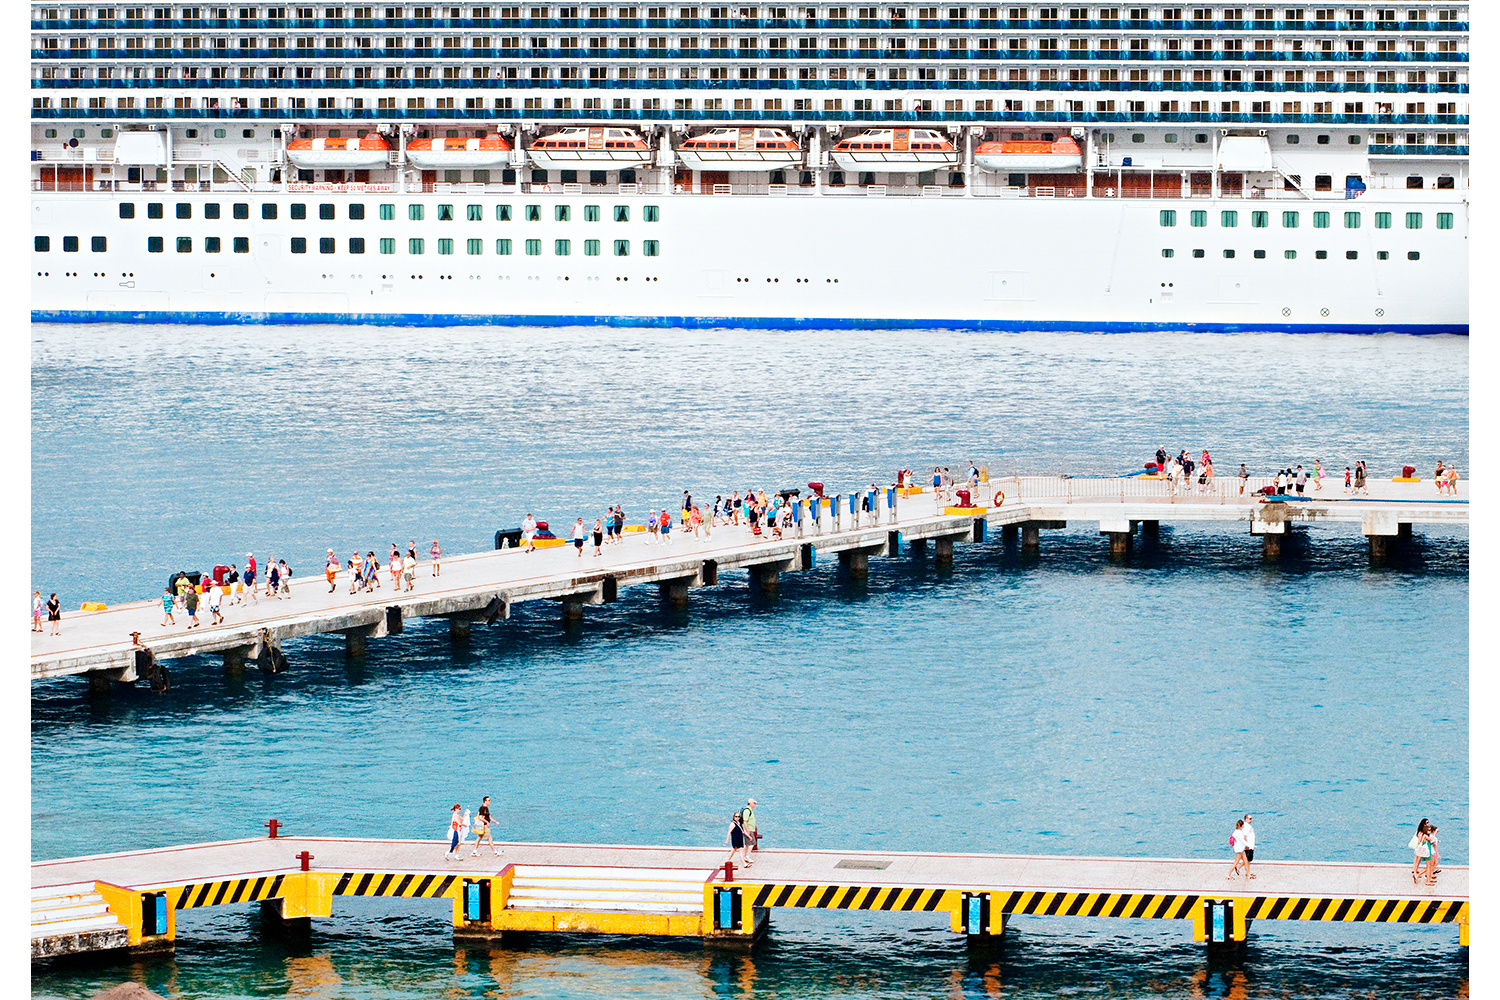 Cruise terminal in Cozumel, Mexico, 2010